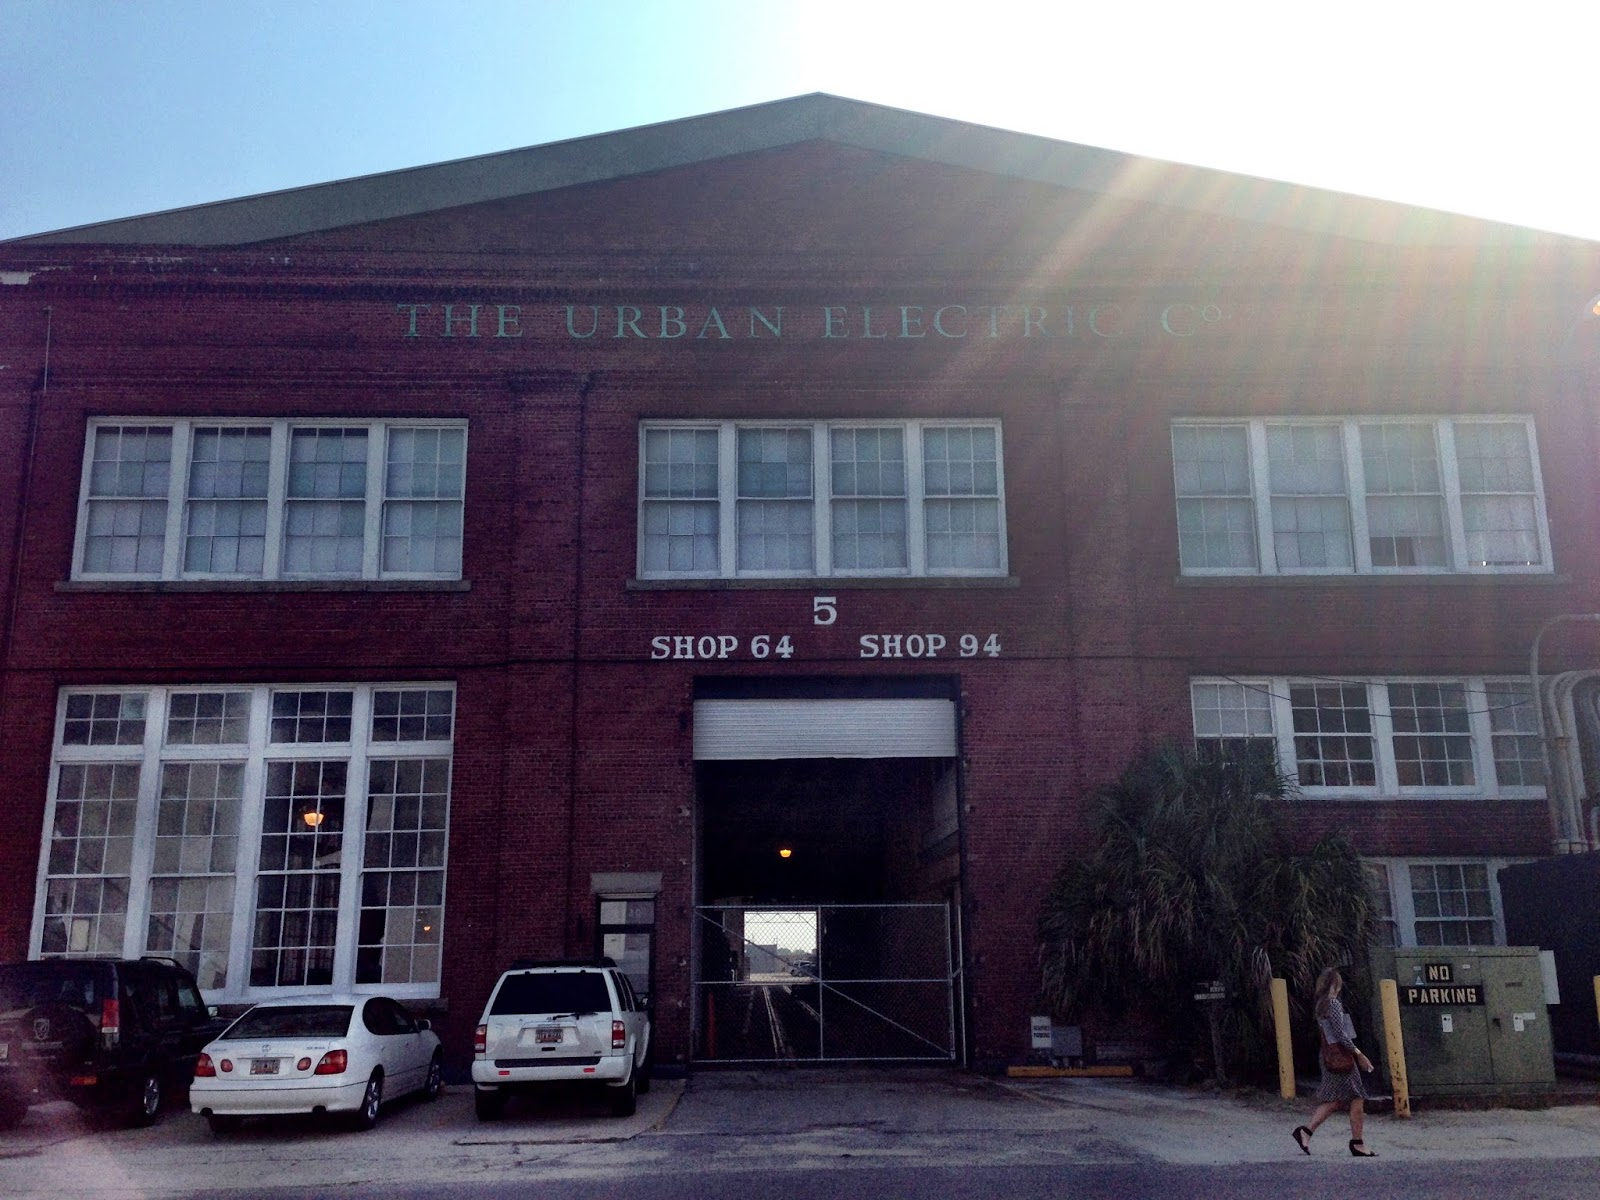 Charleston Spotlight: The Urban Electric Co.